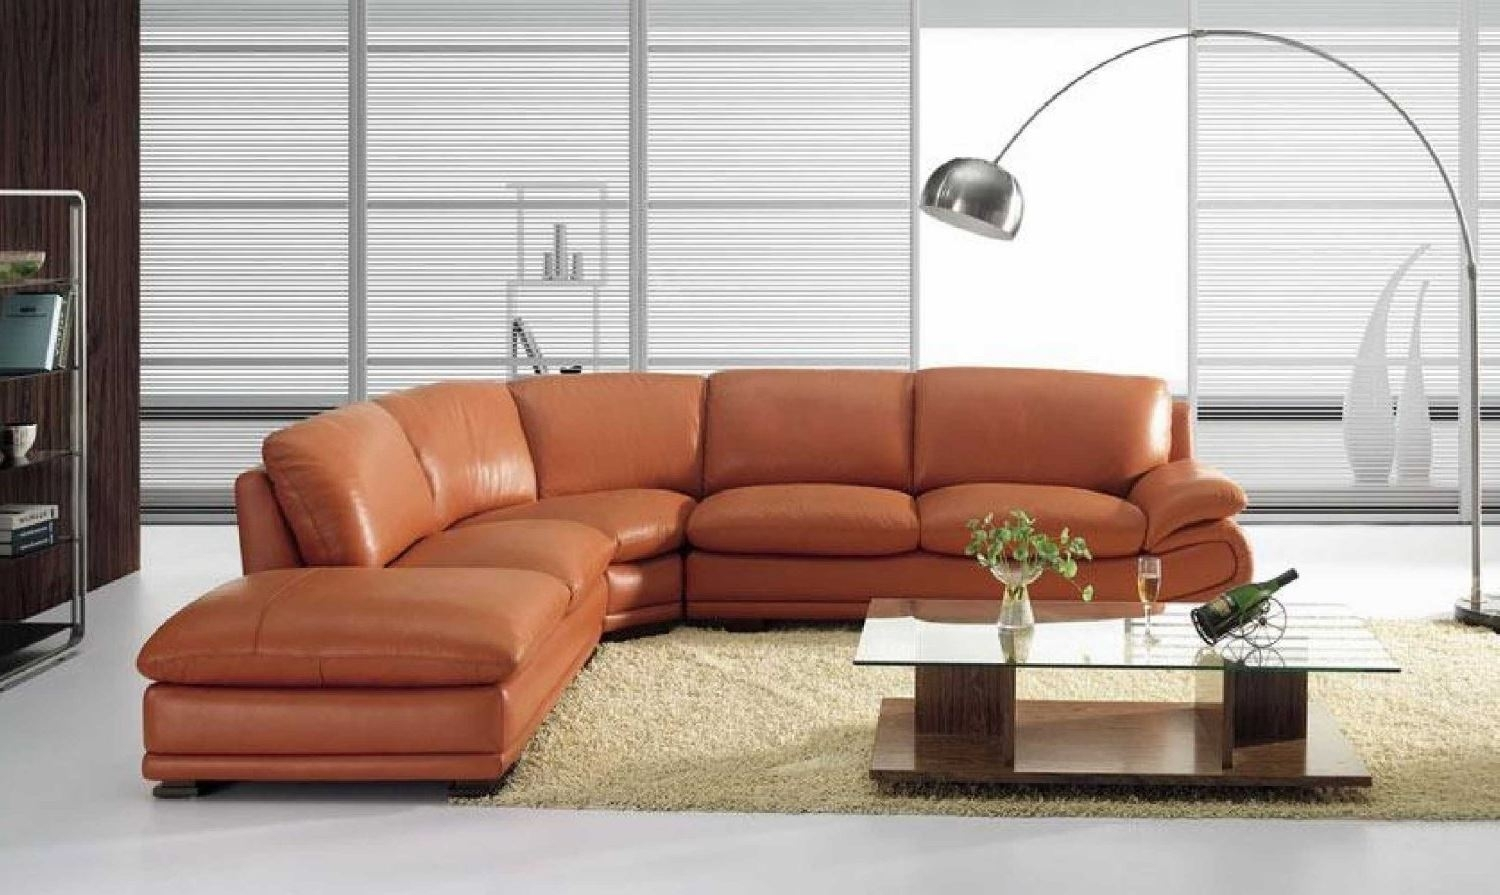 Vig Furniture Bo 3920 Leather Modern Camel Sectional Sofa For Camel Sectional Sofas (Image 10 of 10)